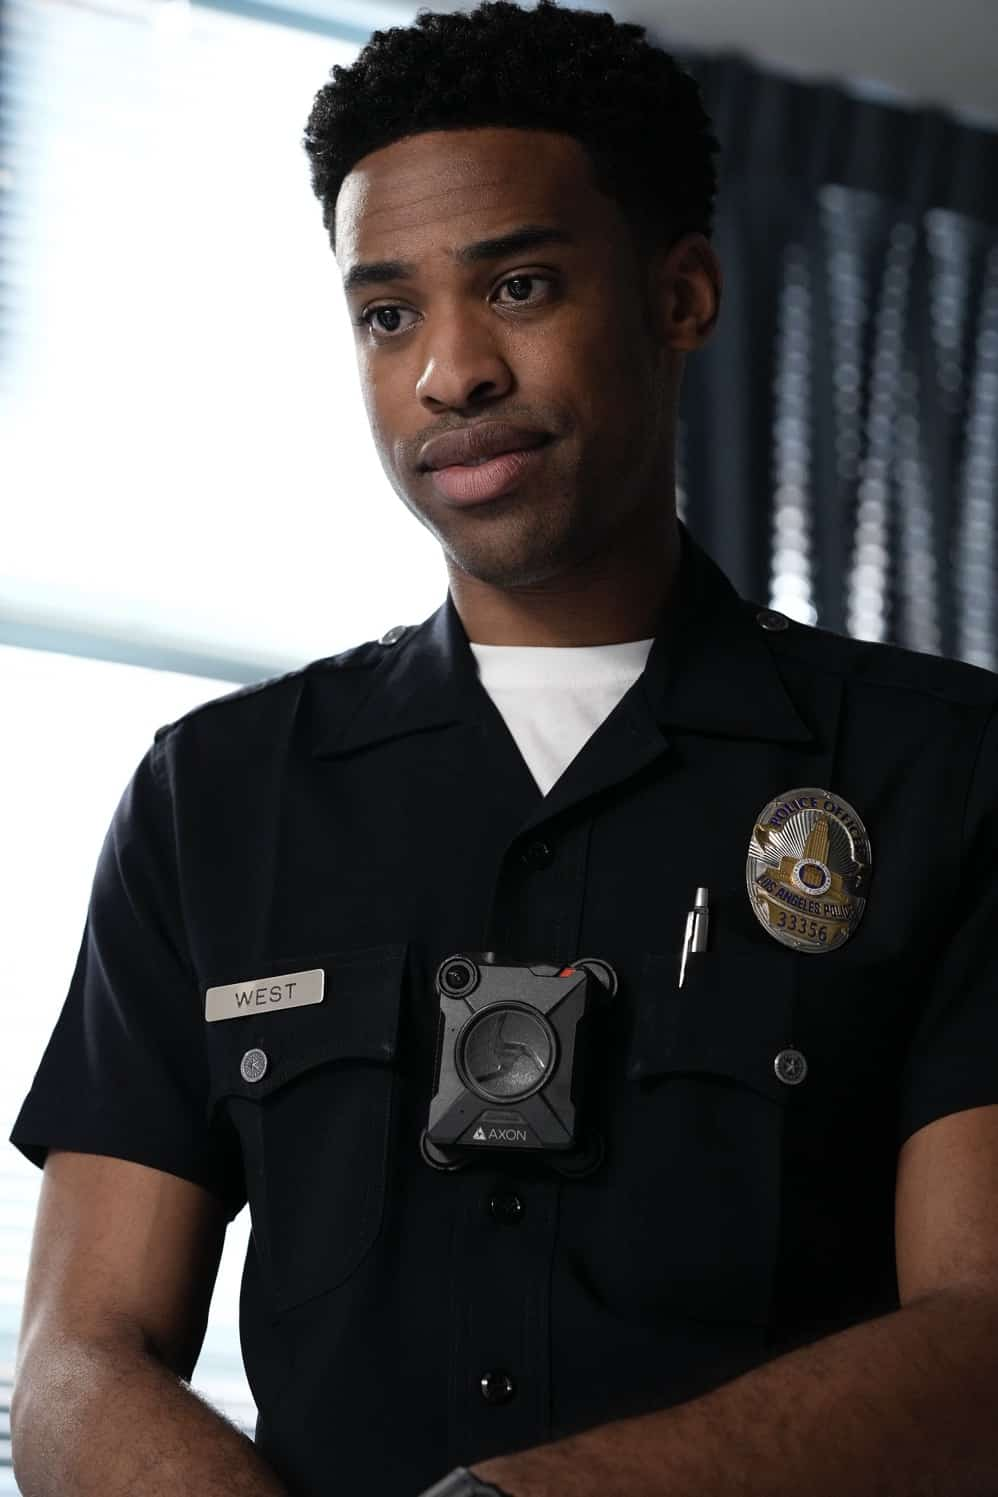 """THE ROOKIE Season 3 Episode 12 - """"Brave Heart"""" – After rushing his son, Henry, to the hospital following his collapse, Nolan is reunited with his ex-wife, Sarah, and they must come together to help their son. Meanwhile, Detective Lopez discovers """"La Fiera"""" is in the same hospital and wants to find out exactly why on """"The Rookie,"""" SUNDAY, MAY 2 (10:00-11:00 p.m. EDT), on ABC. (ABC/Scott Everett White) TITUS MAKIN JR."""